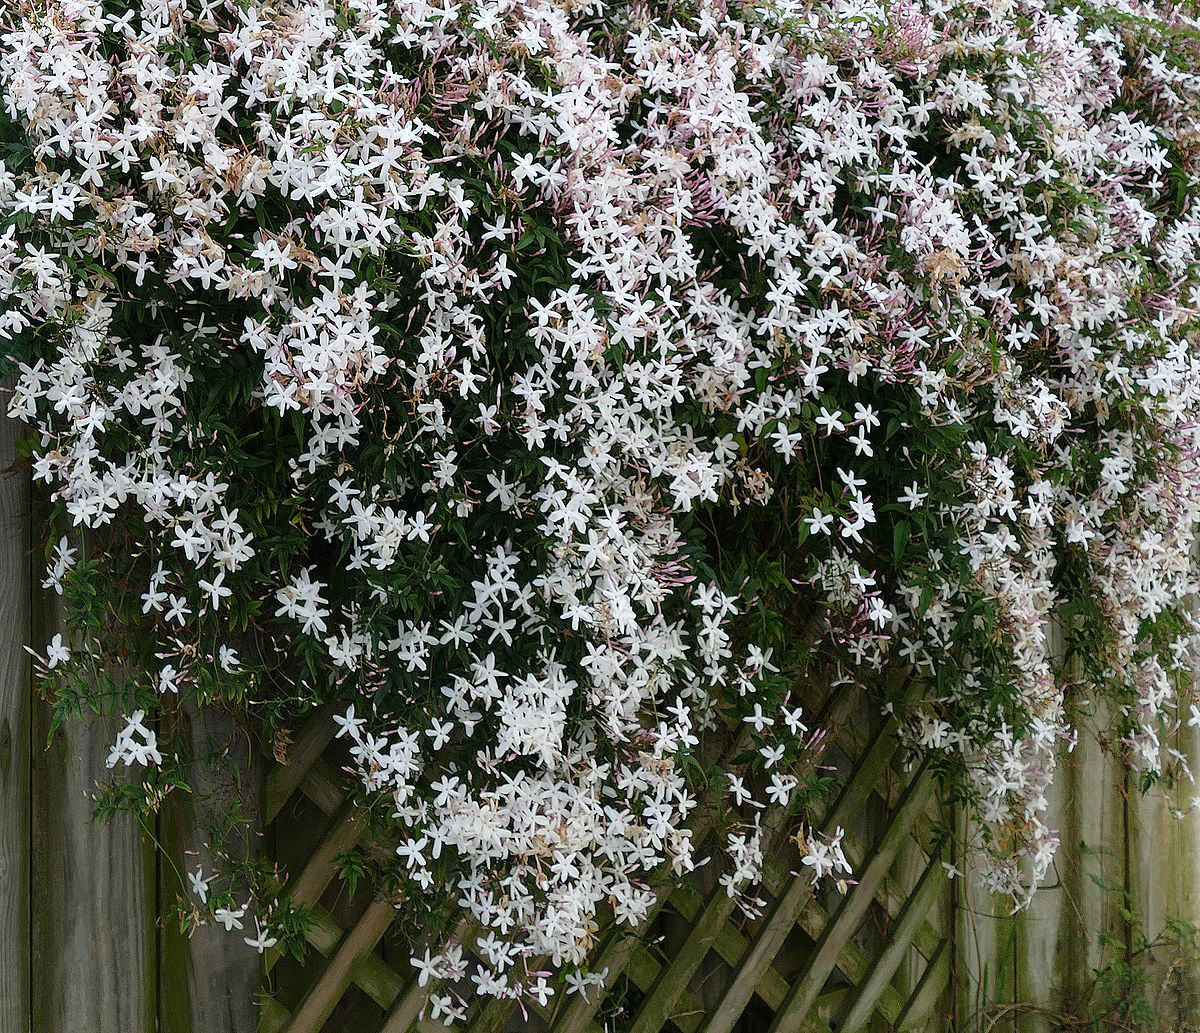 Different types of jasmine flowers with pictures images flower different types of jasmine flowers with pictures choice image different types of jasmine flowers with pictures izmirmasajfo